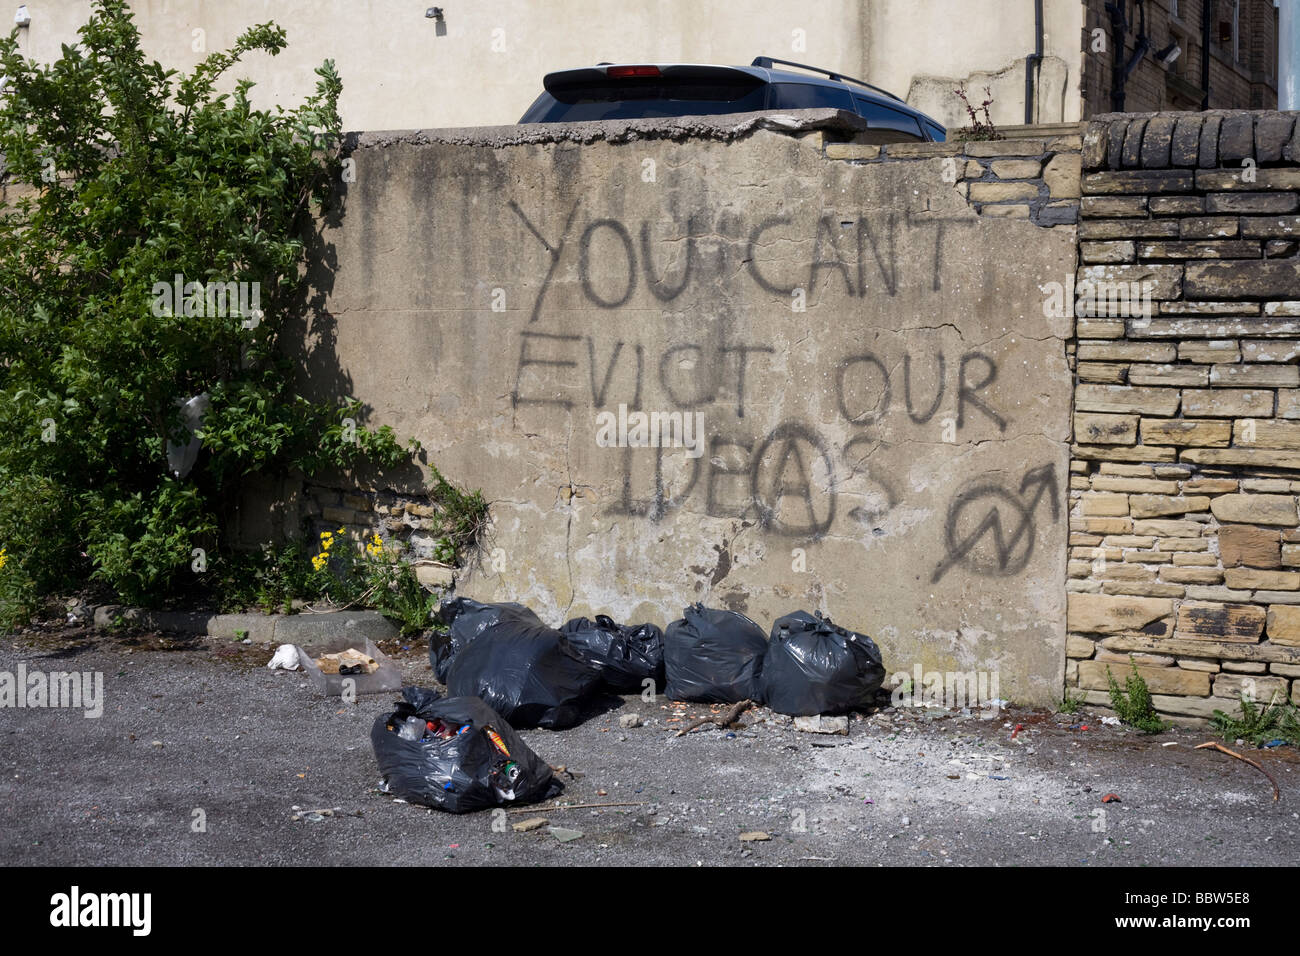 Orwellian graffiti sprayed left by evicted residents on rendered brick wall on now deserted estate wasteland - Stock Image